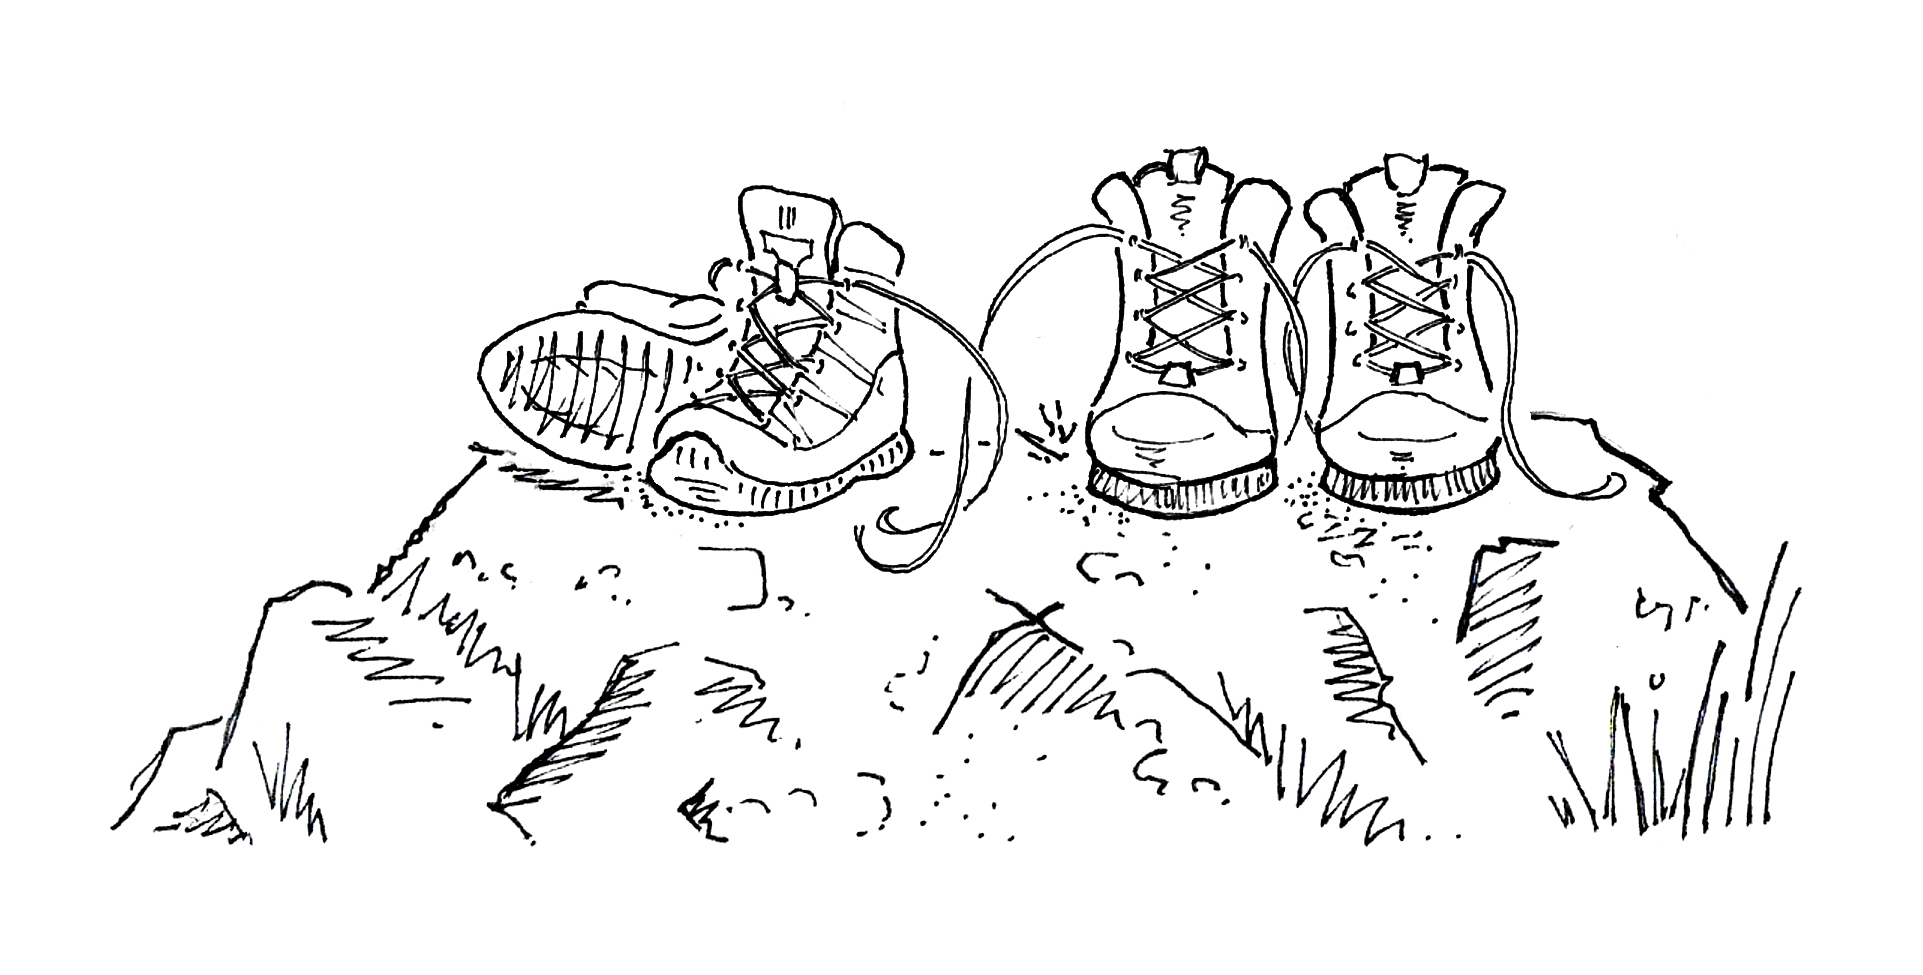 L&C Sketch boots on a rock